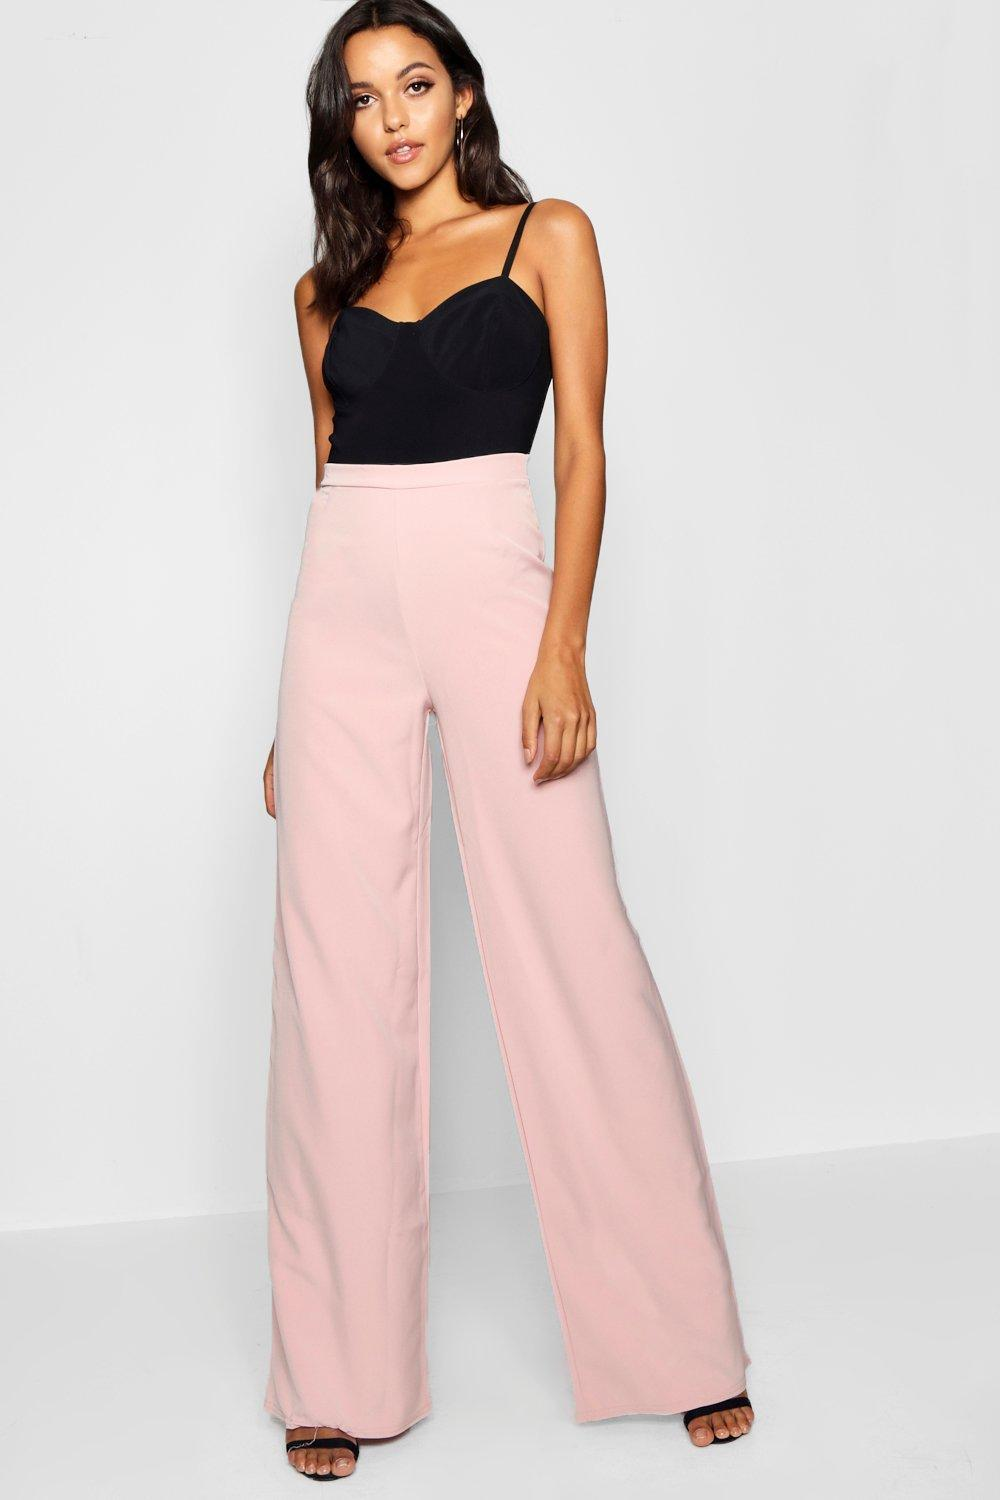 25721ee9c8cf6 Boohoo. Women's Tall High Waisted Woven Wide Leg Trousers